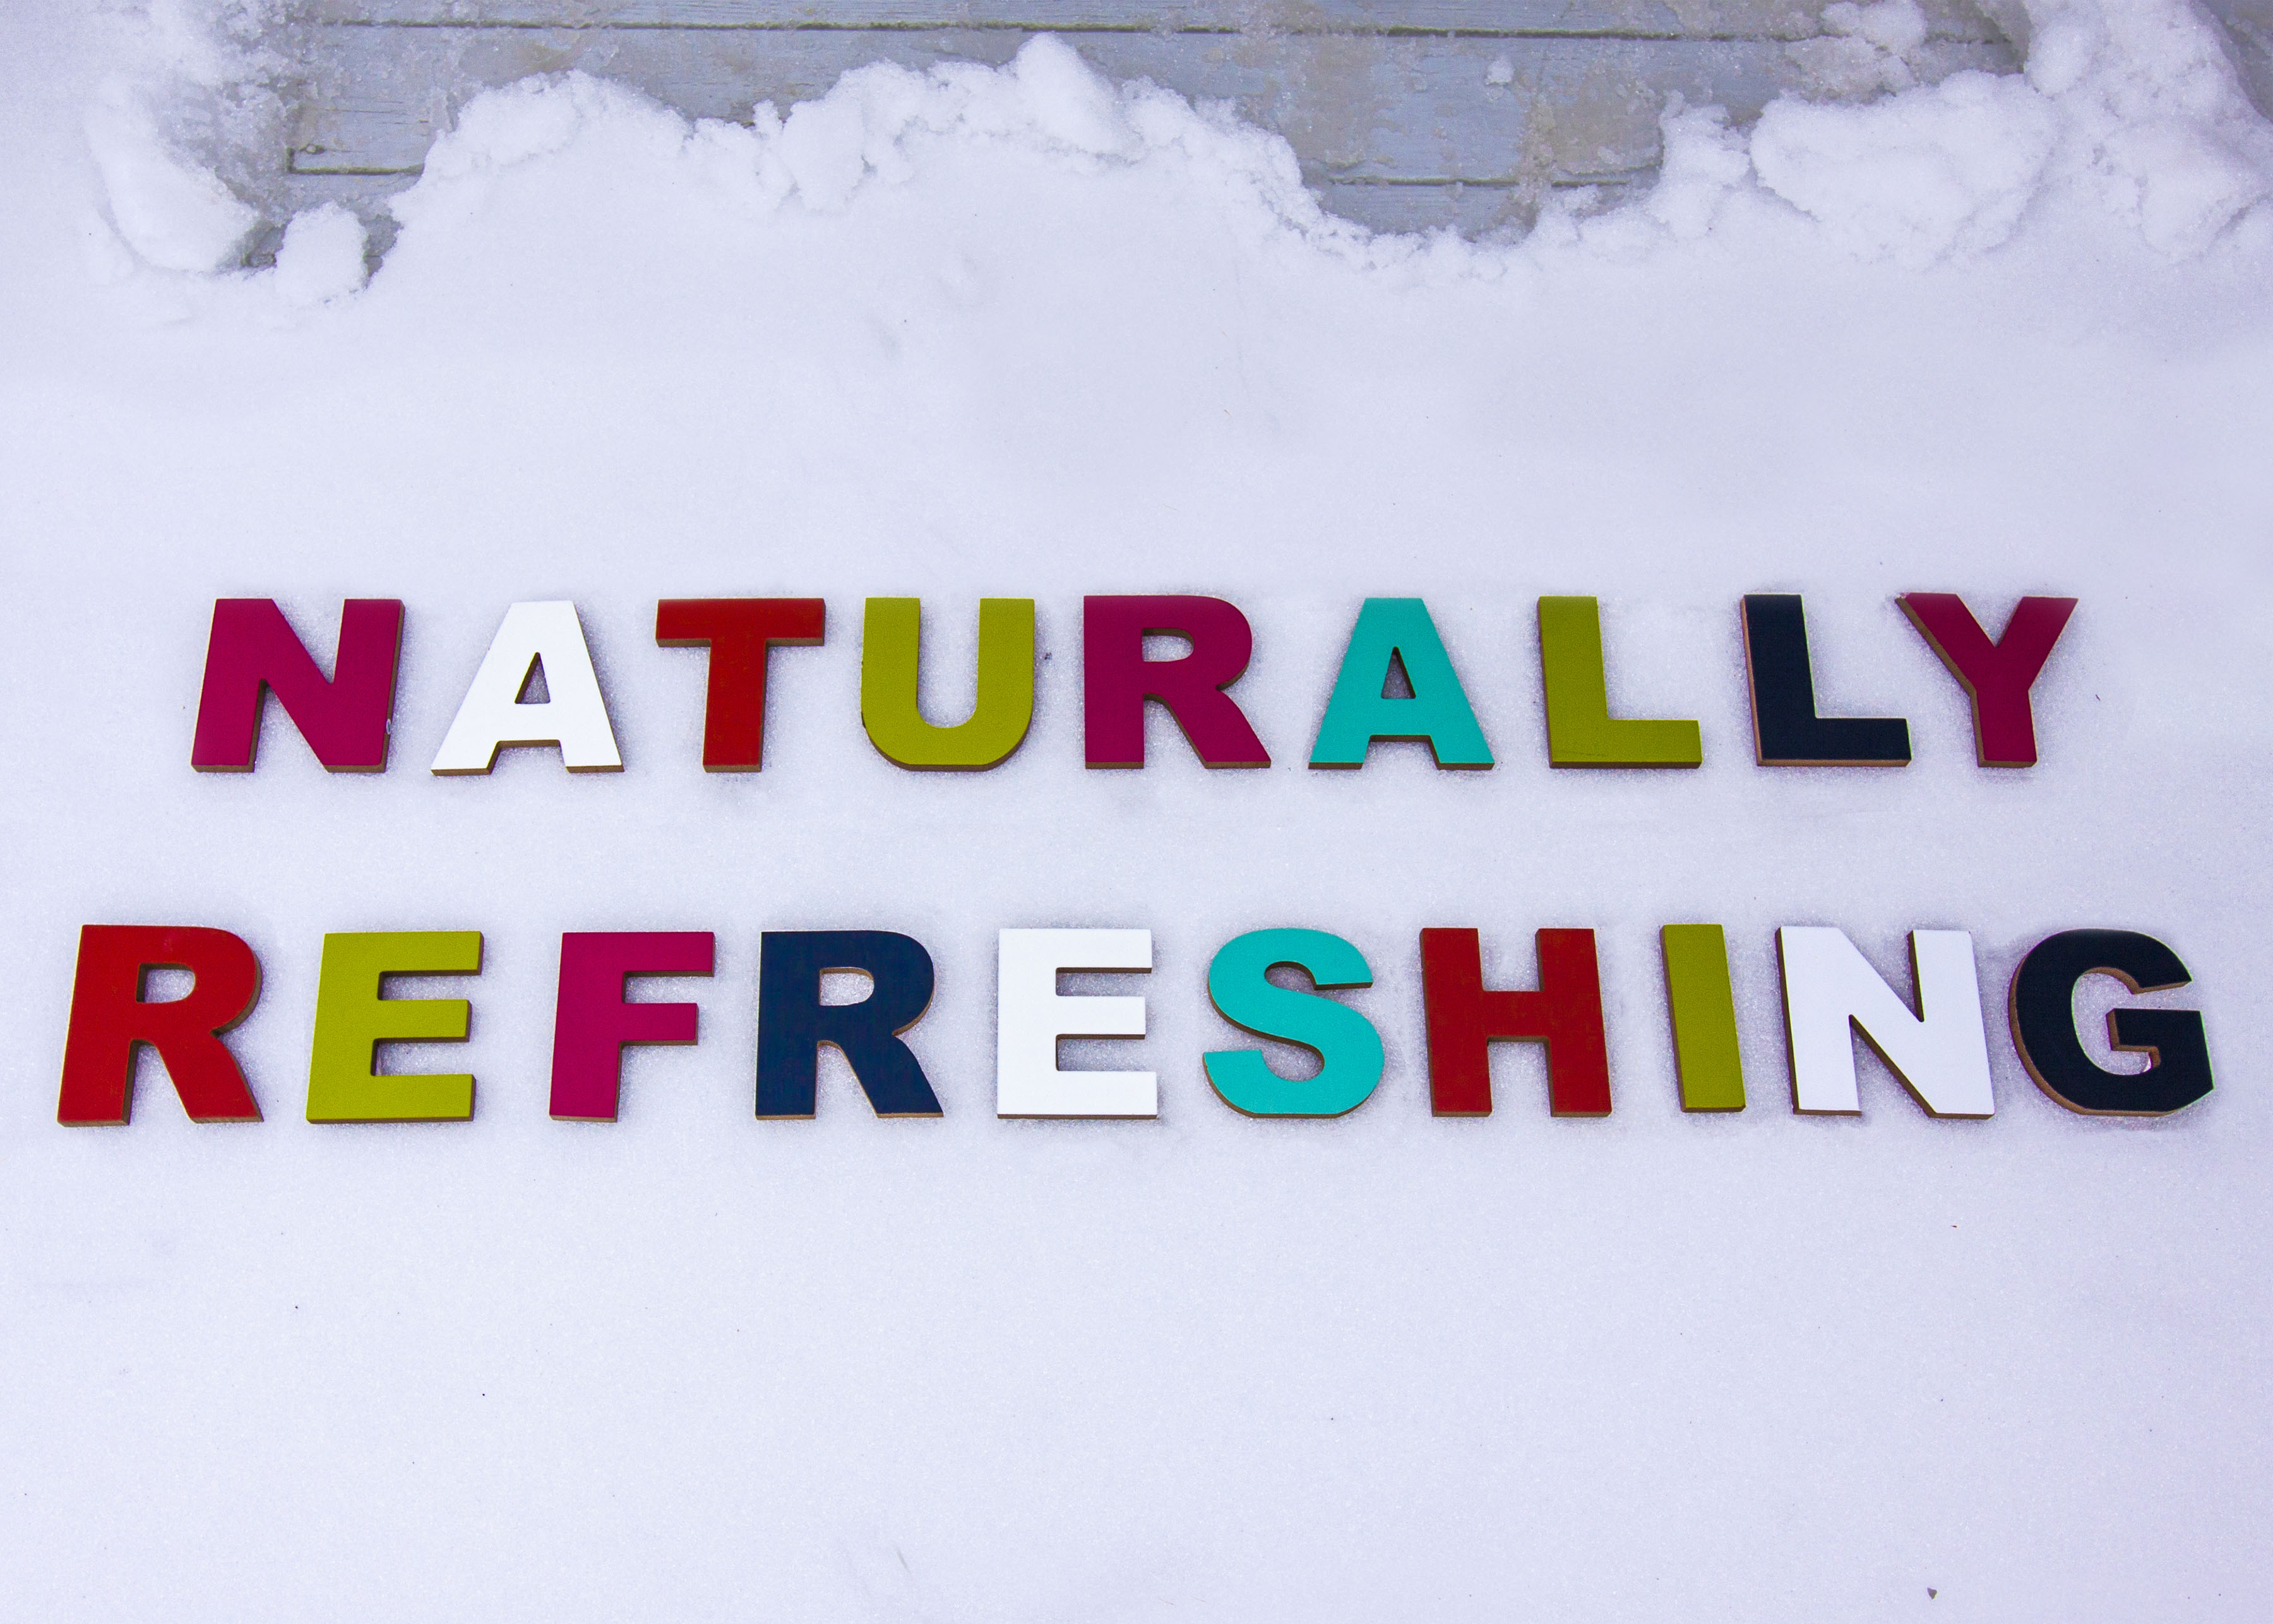 naturallyrefreshingwinter03